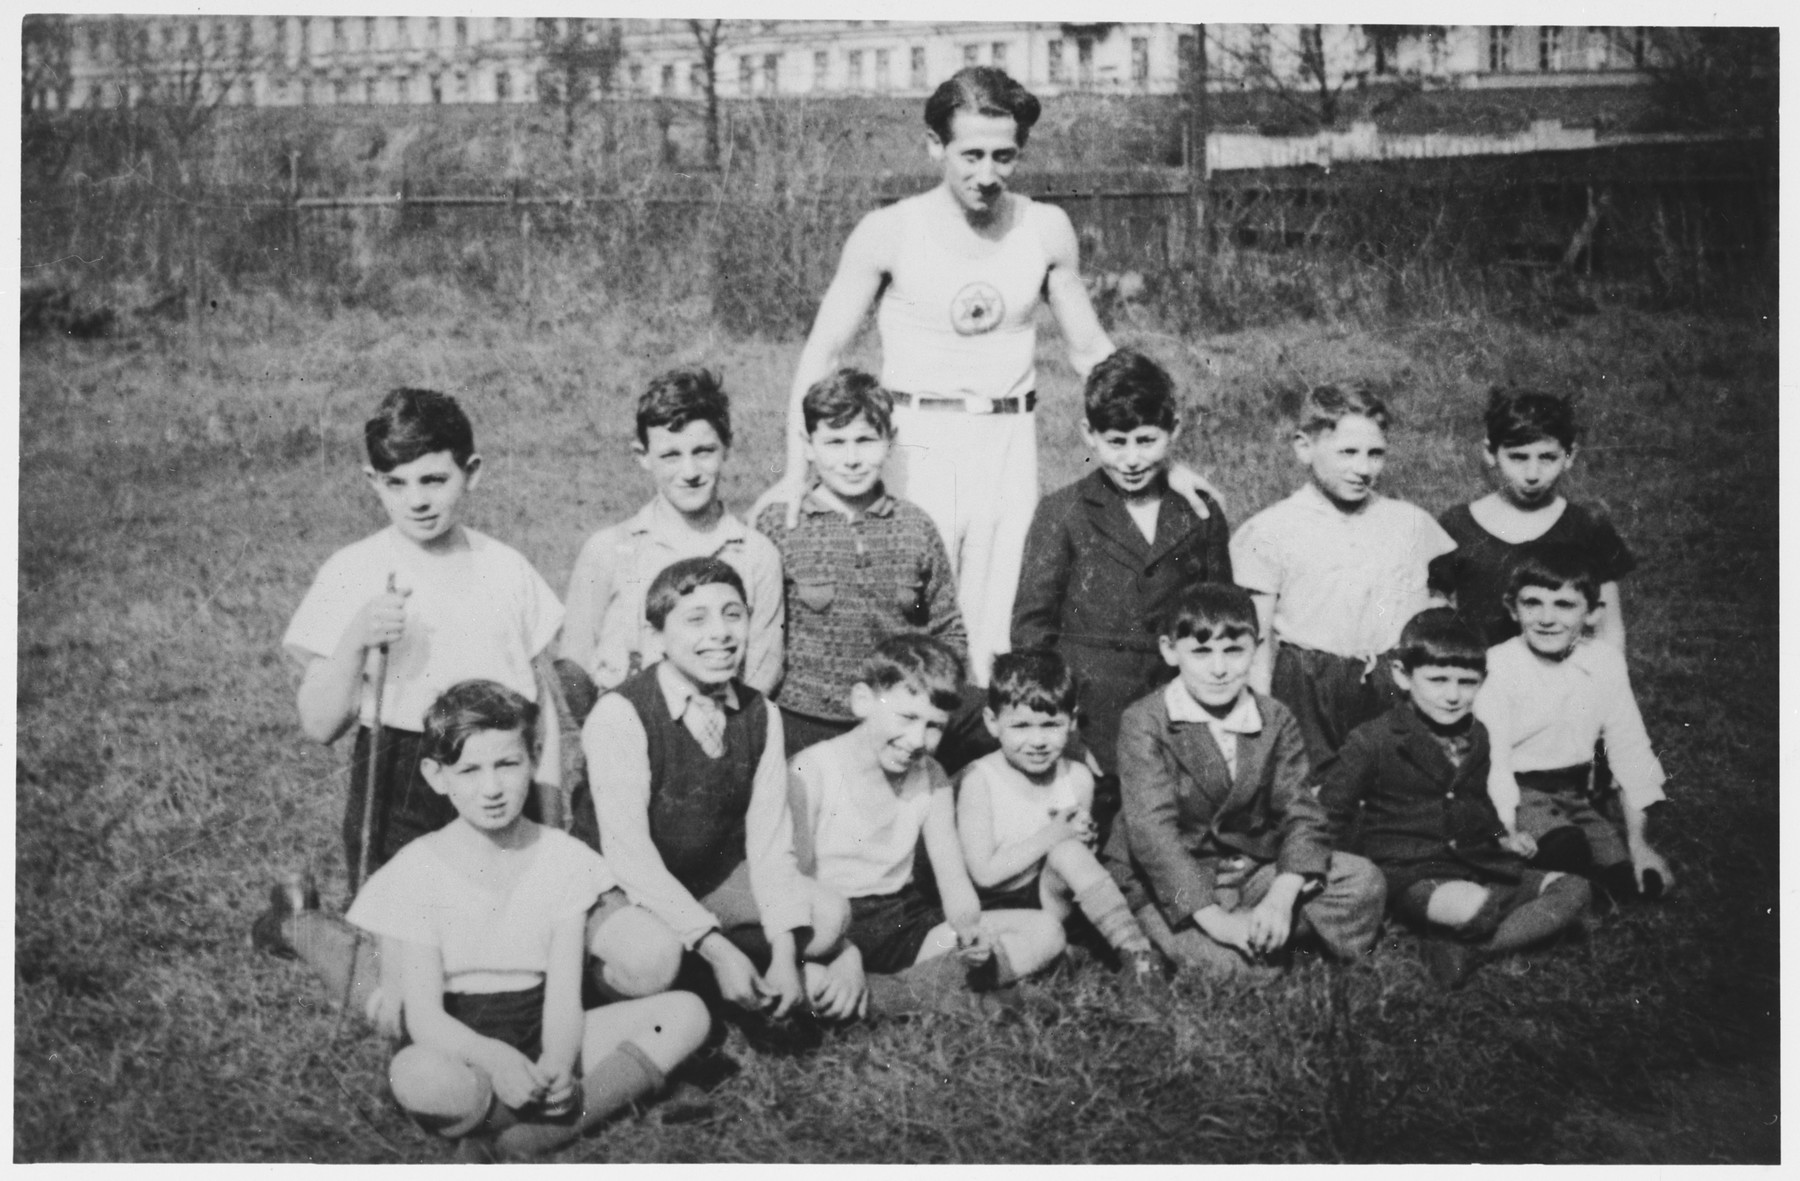 Alex Hochhauser poses with a group of boys from the Bar Kochba sports club in Breslau.